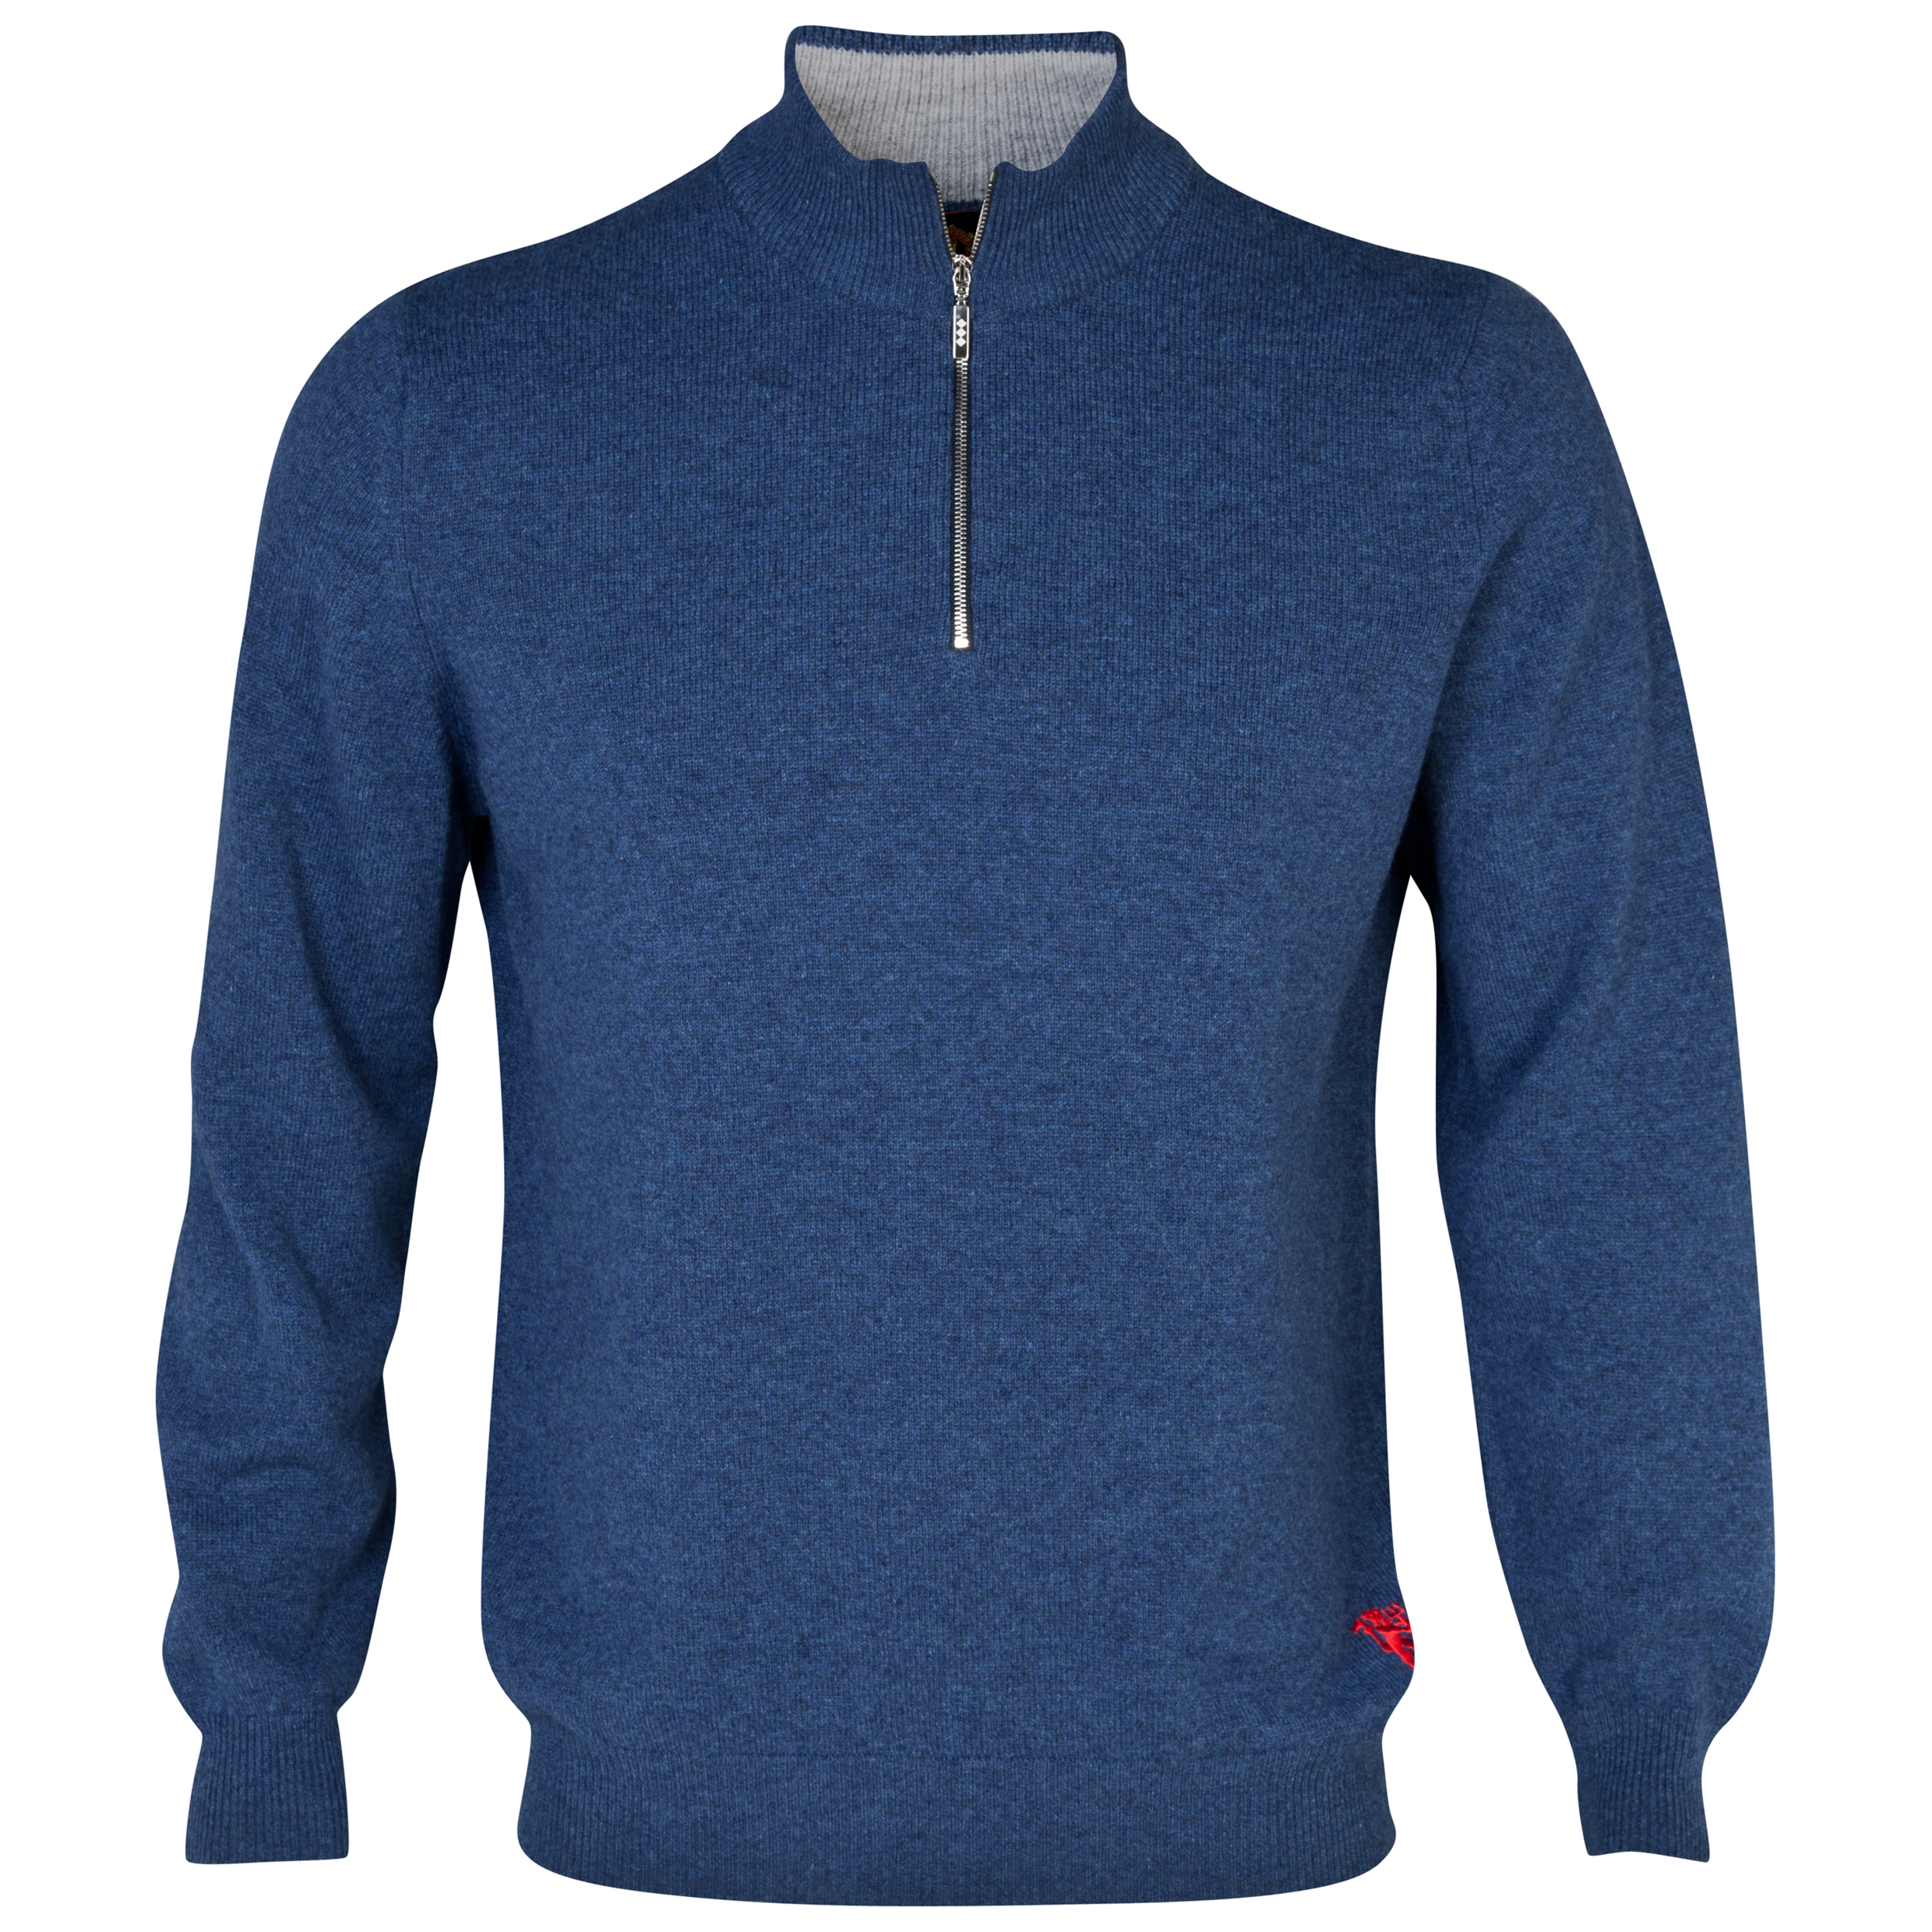 Manchester United Lambswool Zip Thru Sweater - Mens Blue